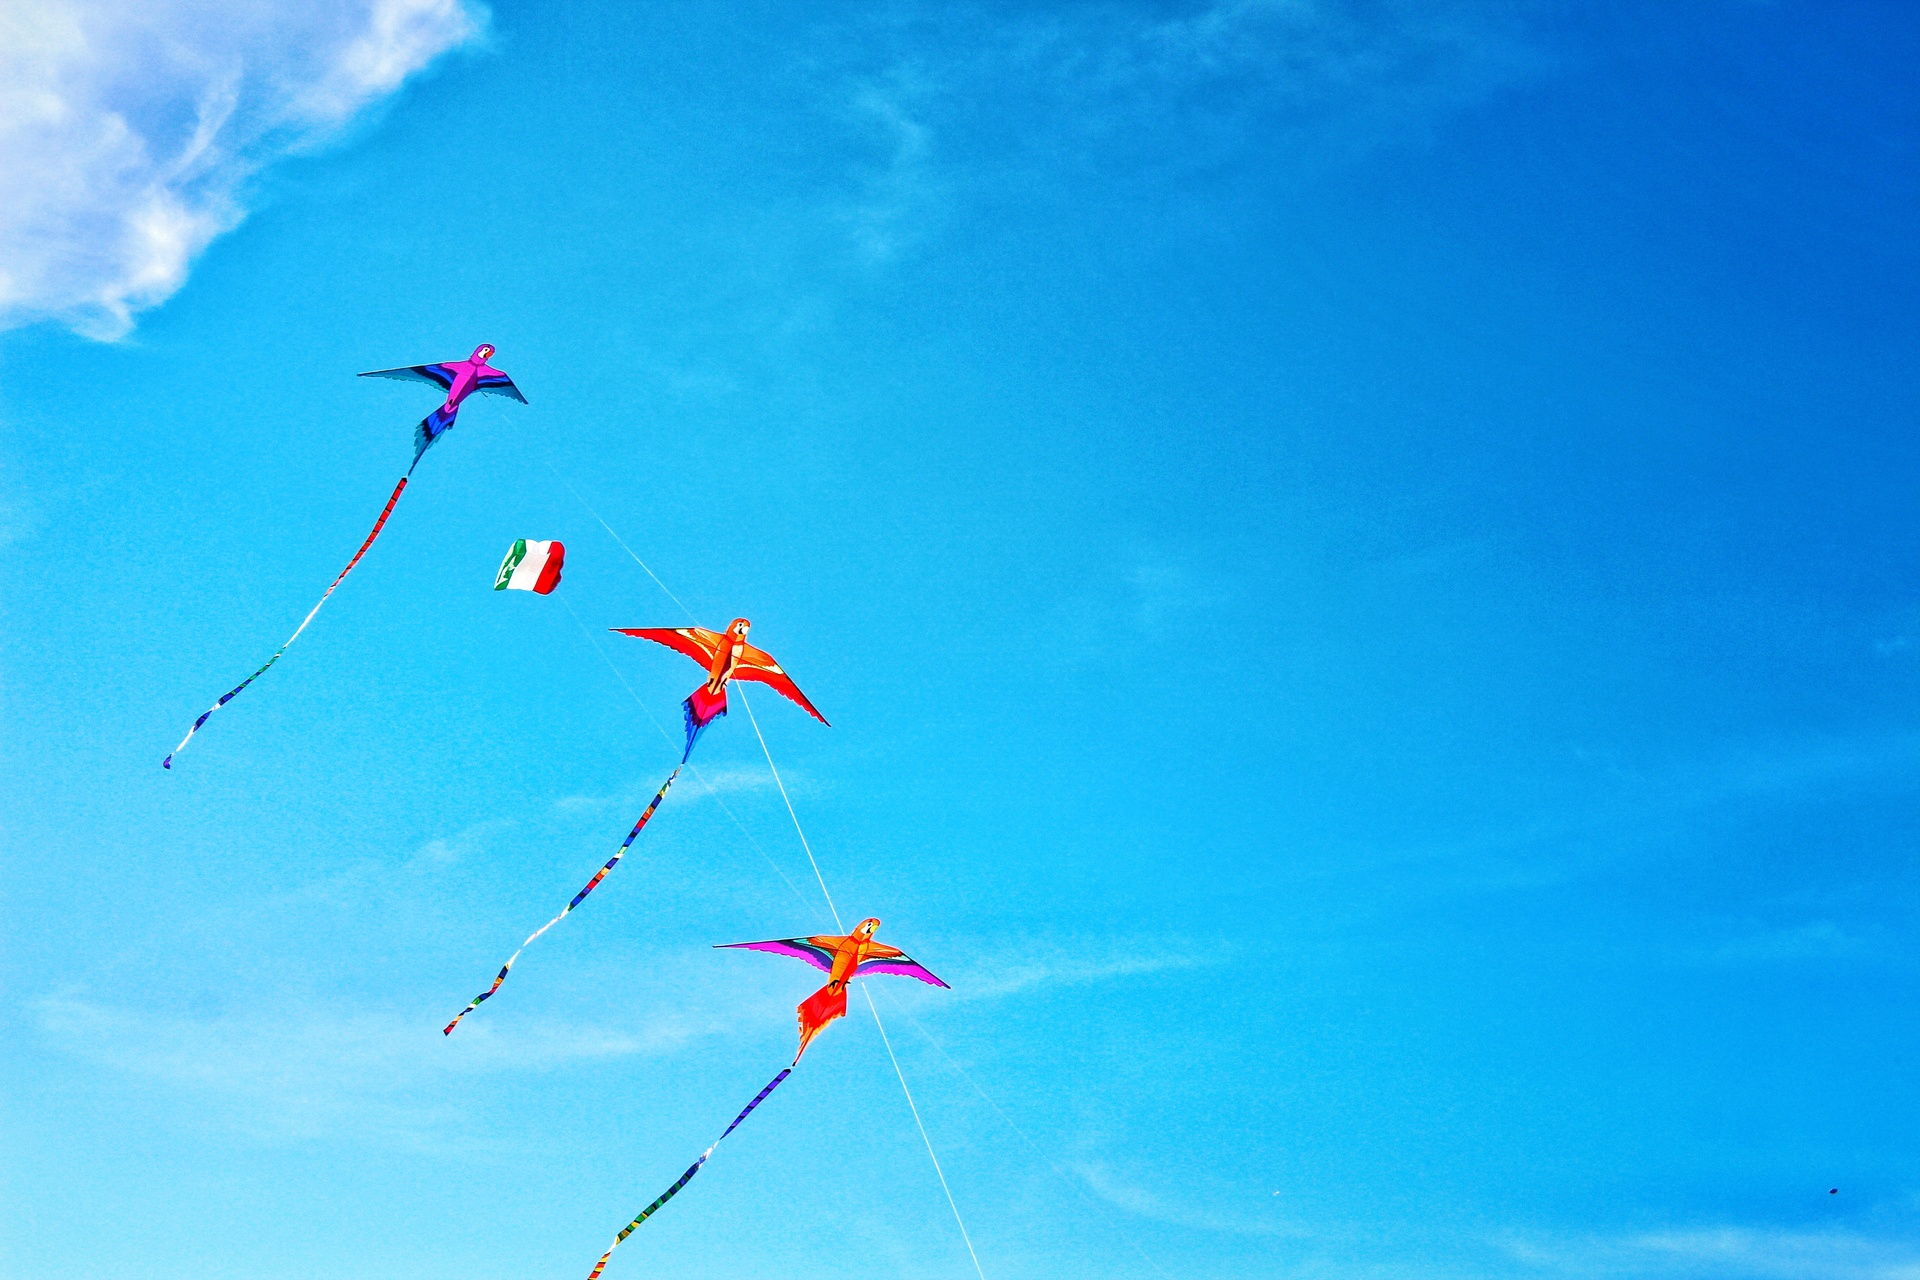 Kites flying in sky | photography, color image, horizontal, outdoors